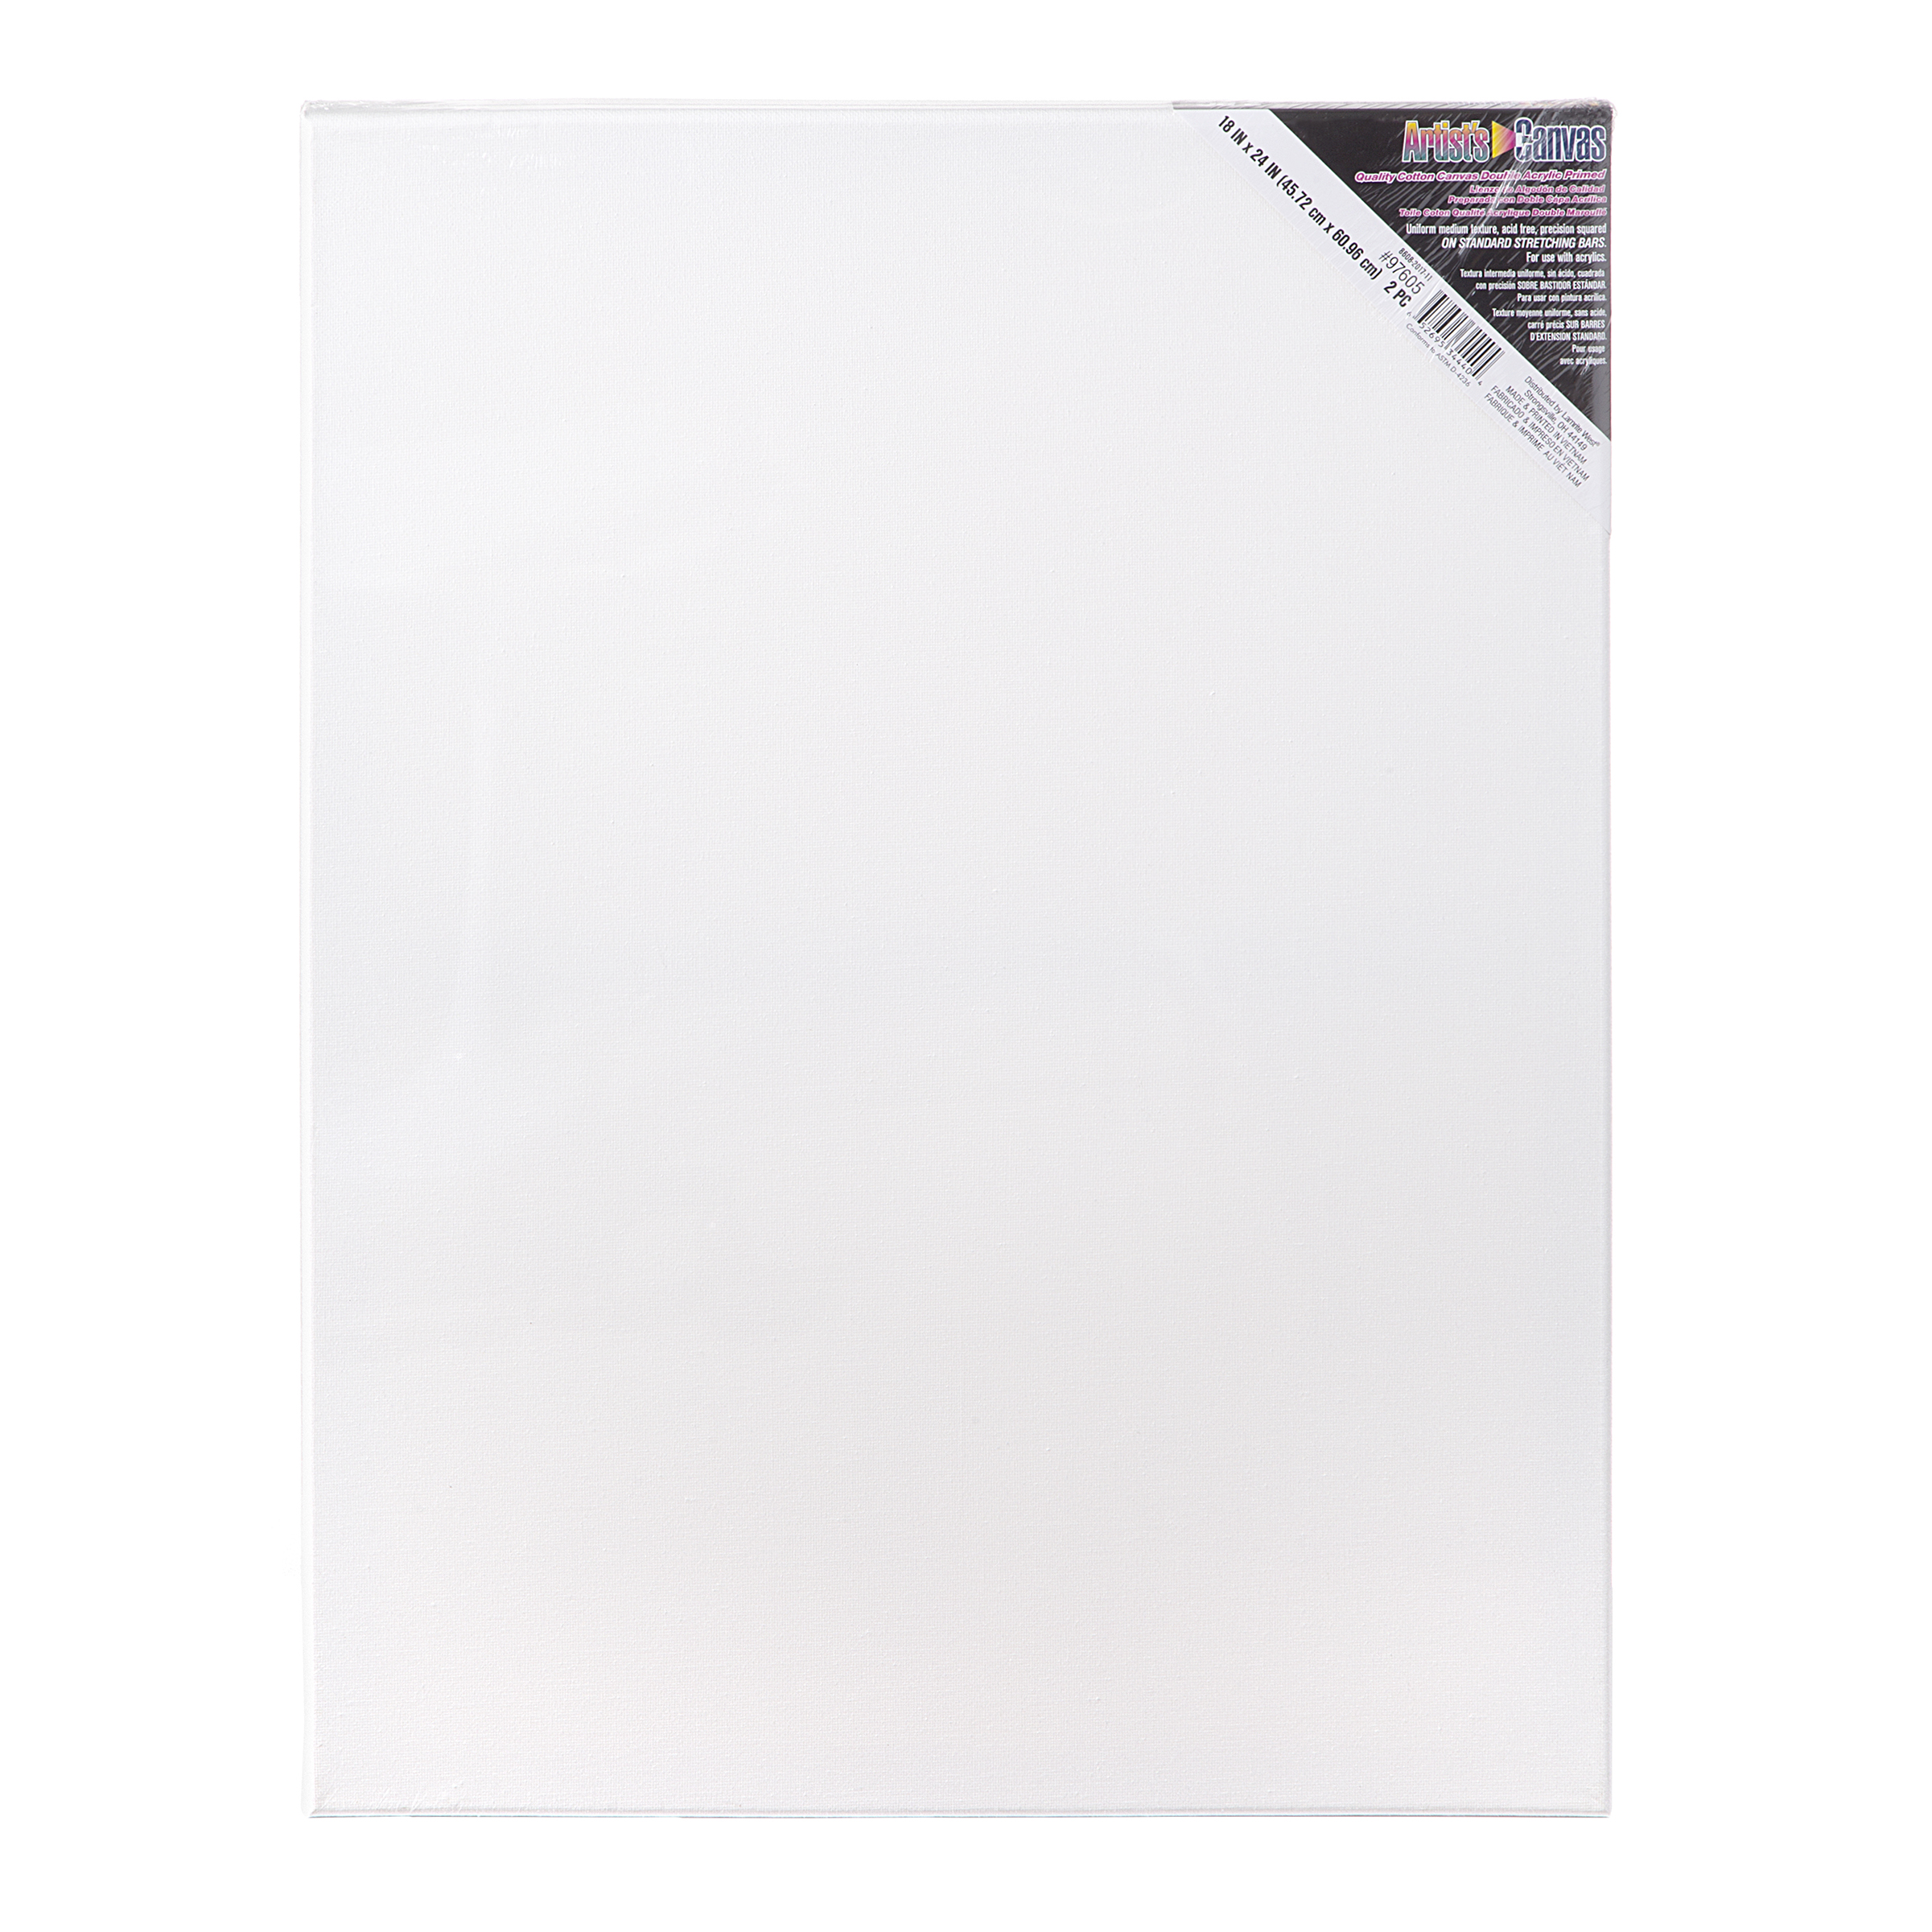 Professional Stretched Artist Canvas 6 Pack x 14 in 11 in